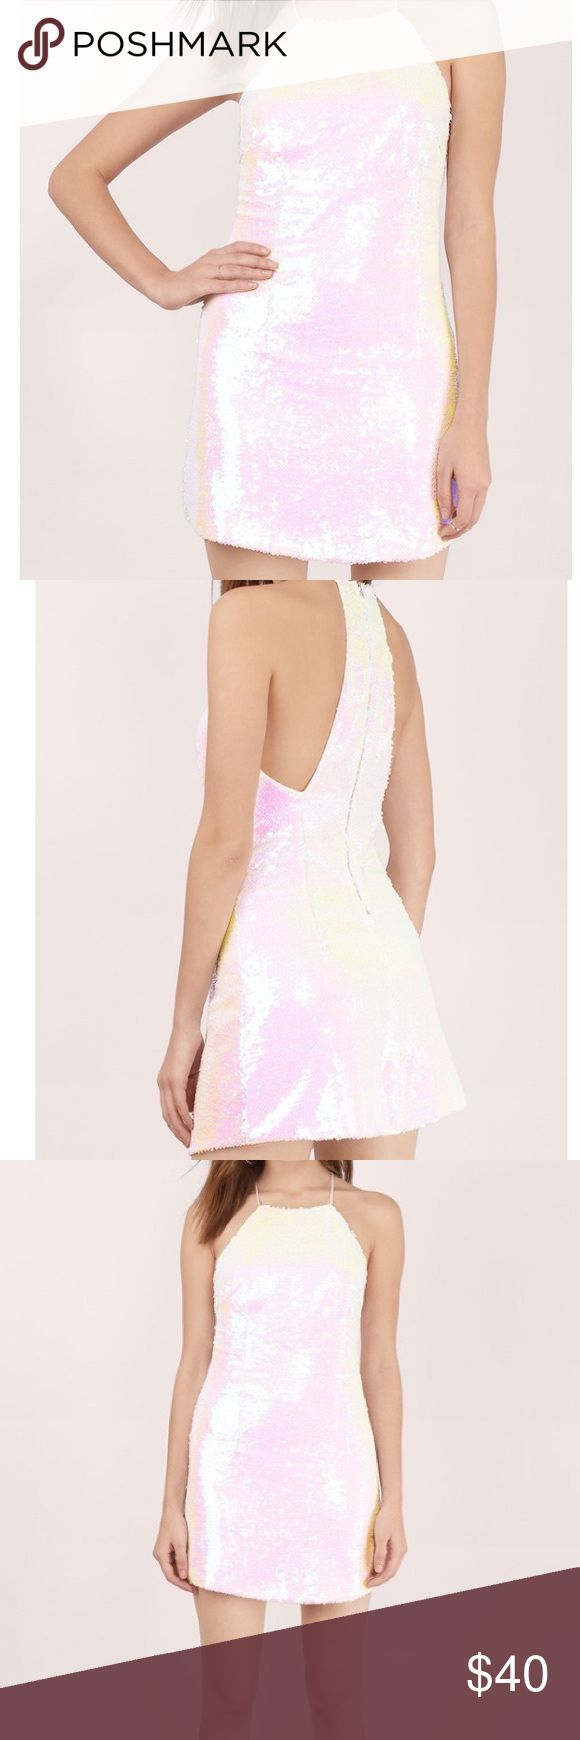 White Sequin Dress White iridescent sequin dress! So cute! I got it for my bachelorette party and it was unfortunately too small. So sad but want someone else to enjoy it!! Never been worn Tobi Dresses Mini